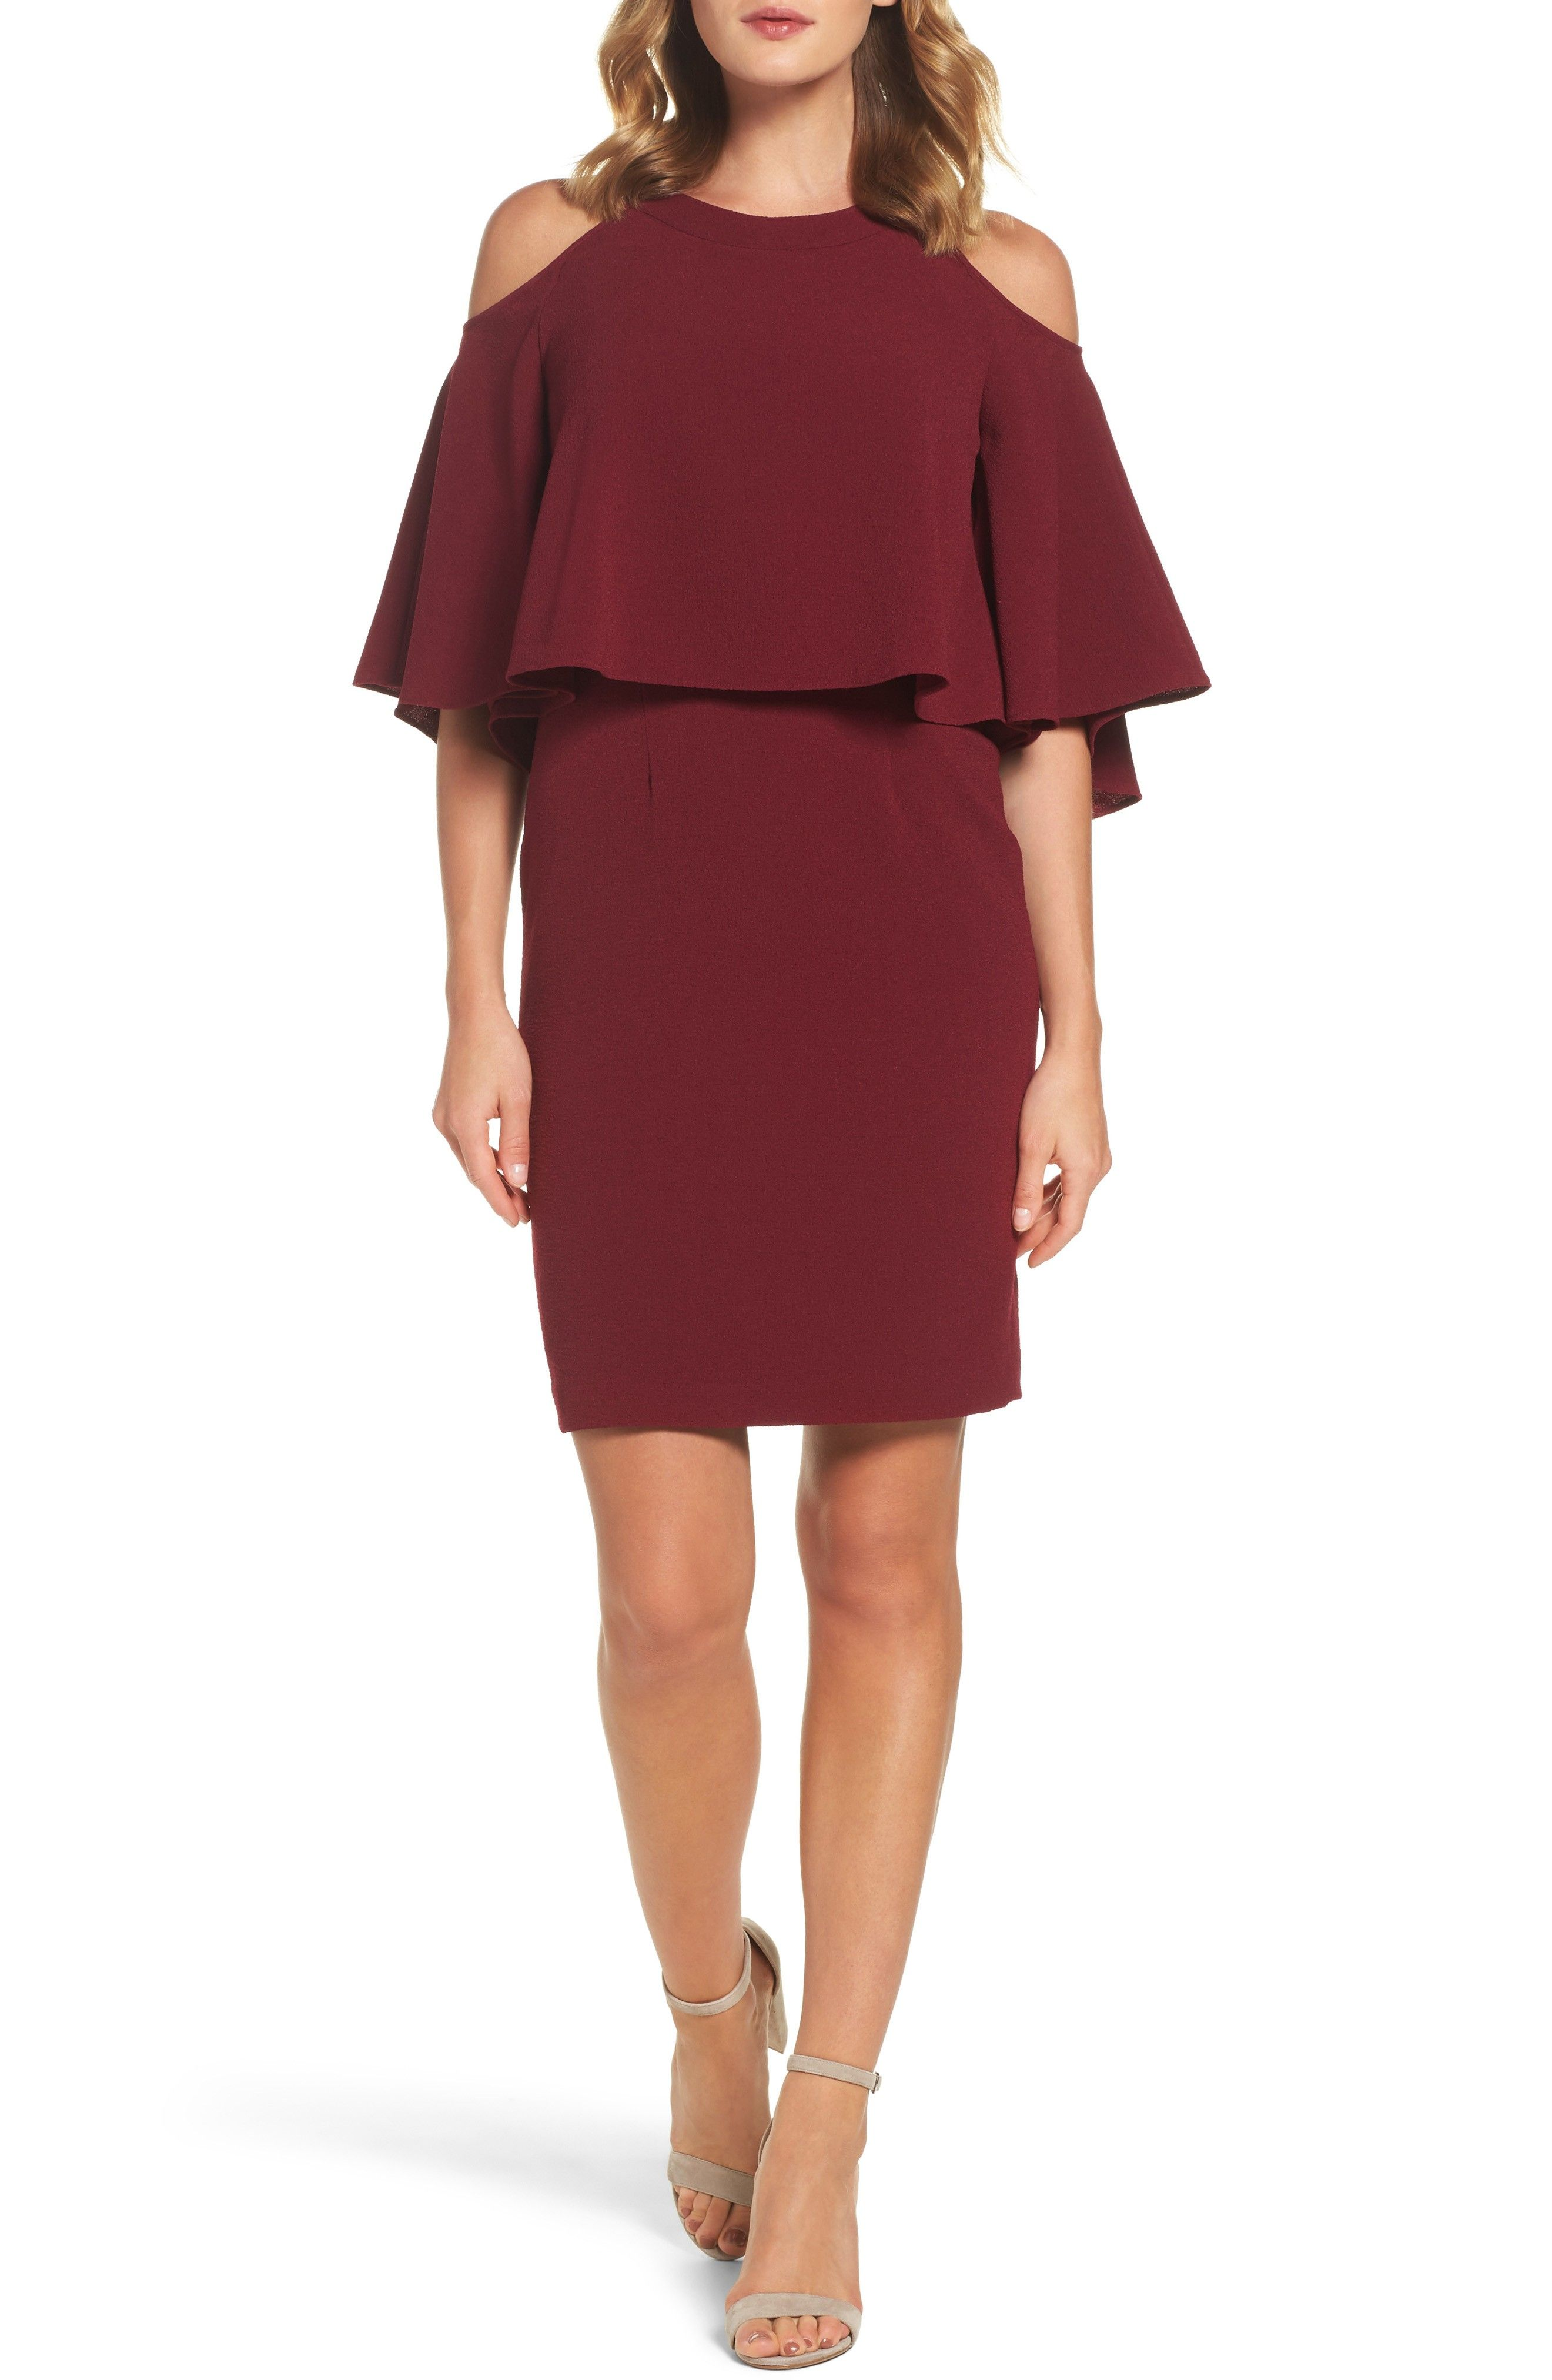 Burgundy red cold shoulder dress for a fall outdoor casual